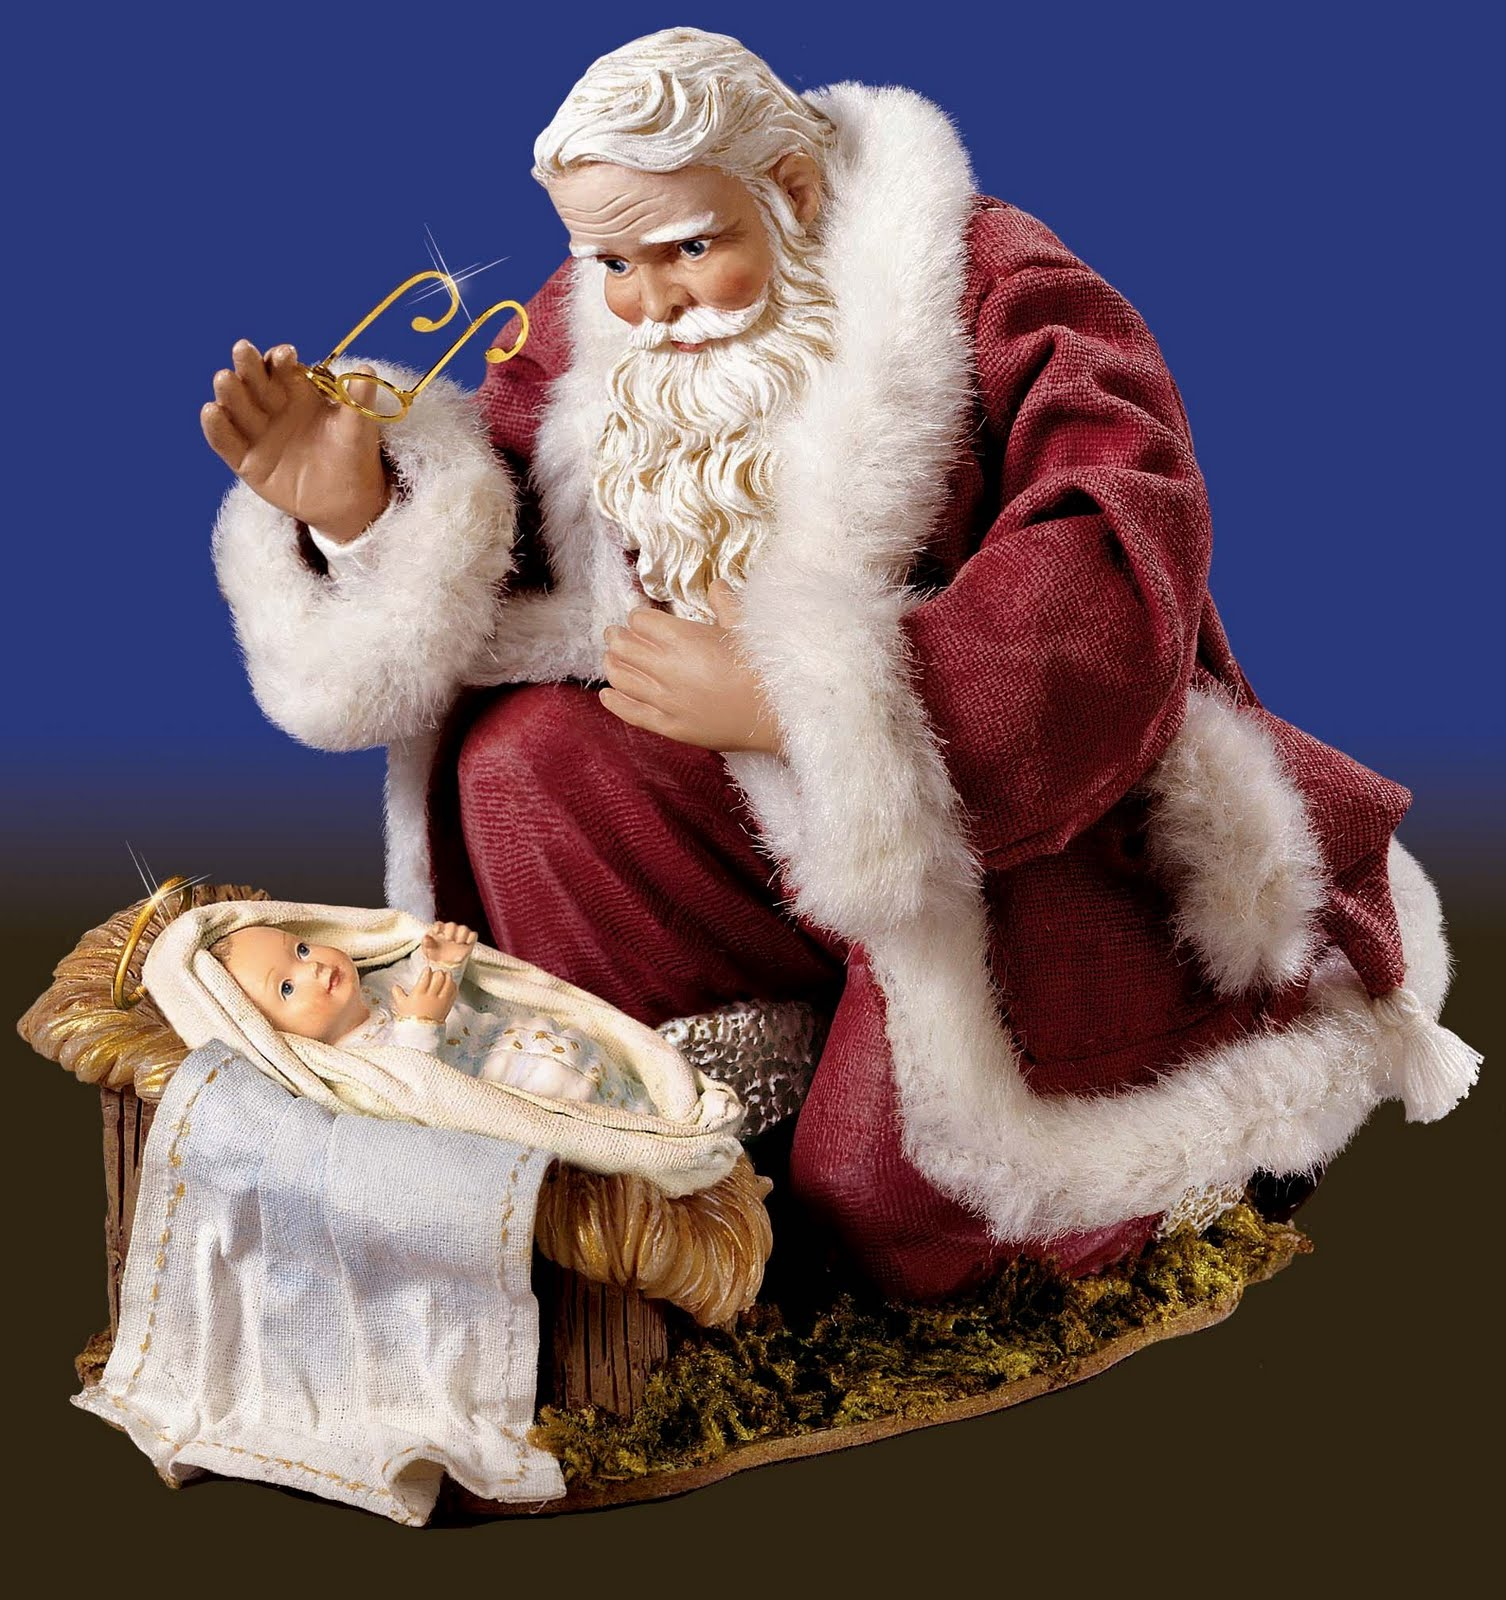 Christmas Wallpapers and Images and Photos: baby jesus wallpapers ...